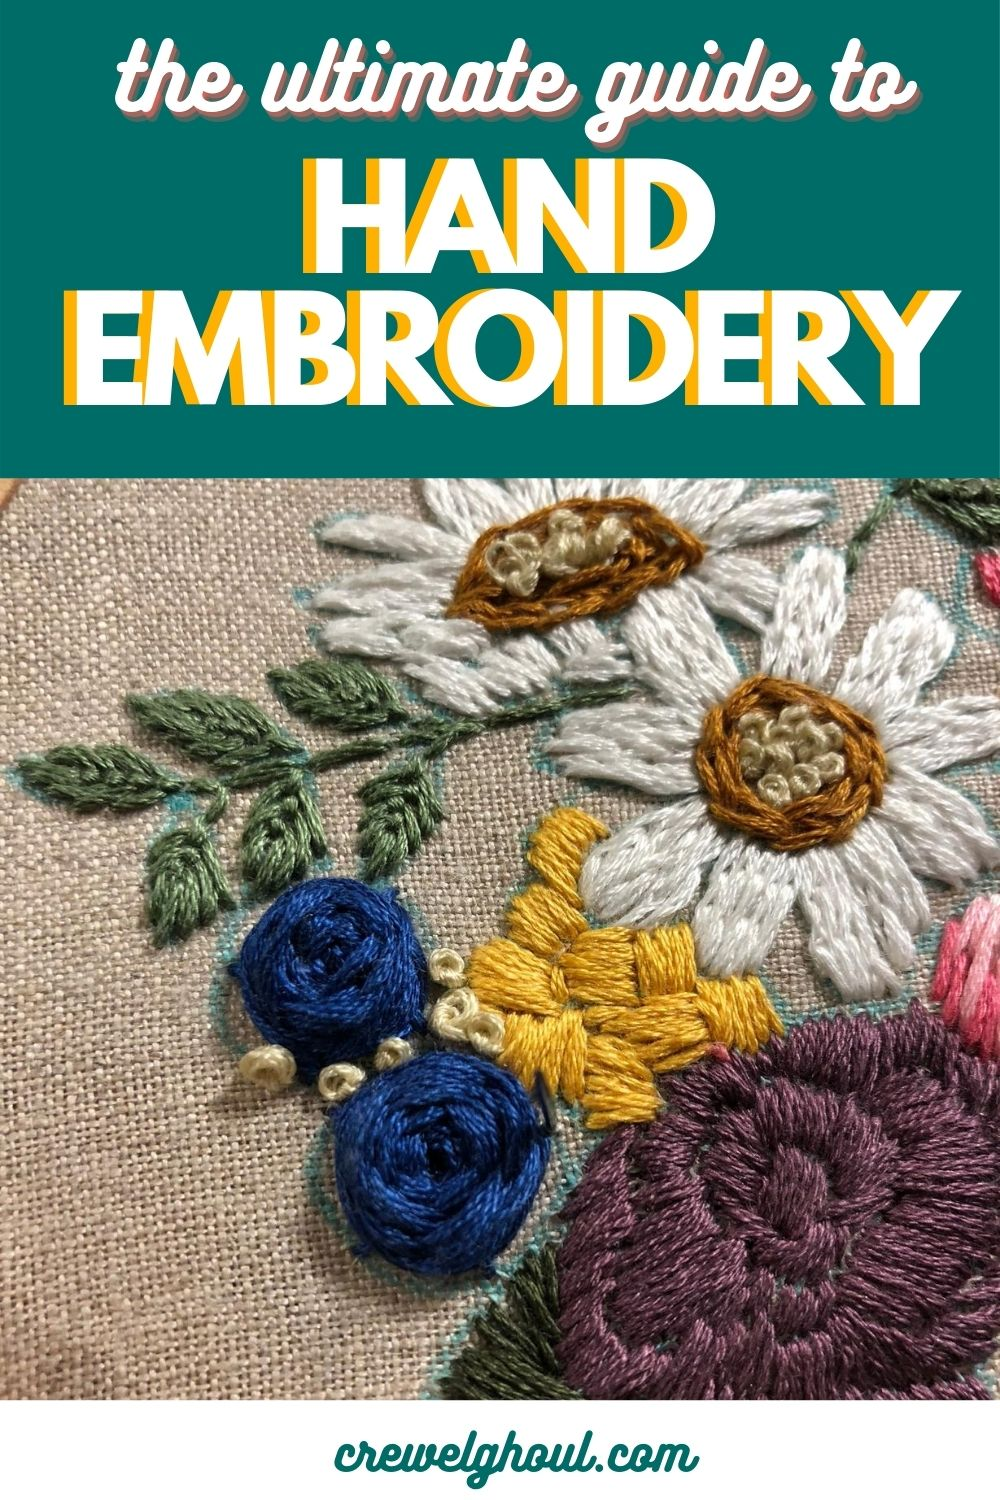 learn how to hand embroider, the ultimate guide to hand embroidery